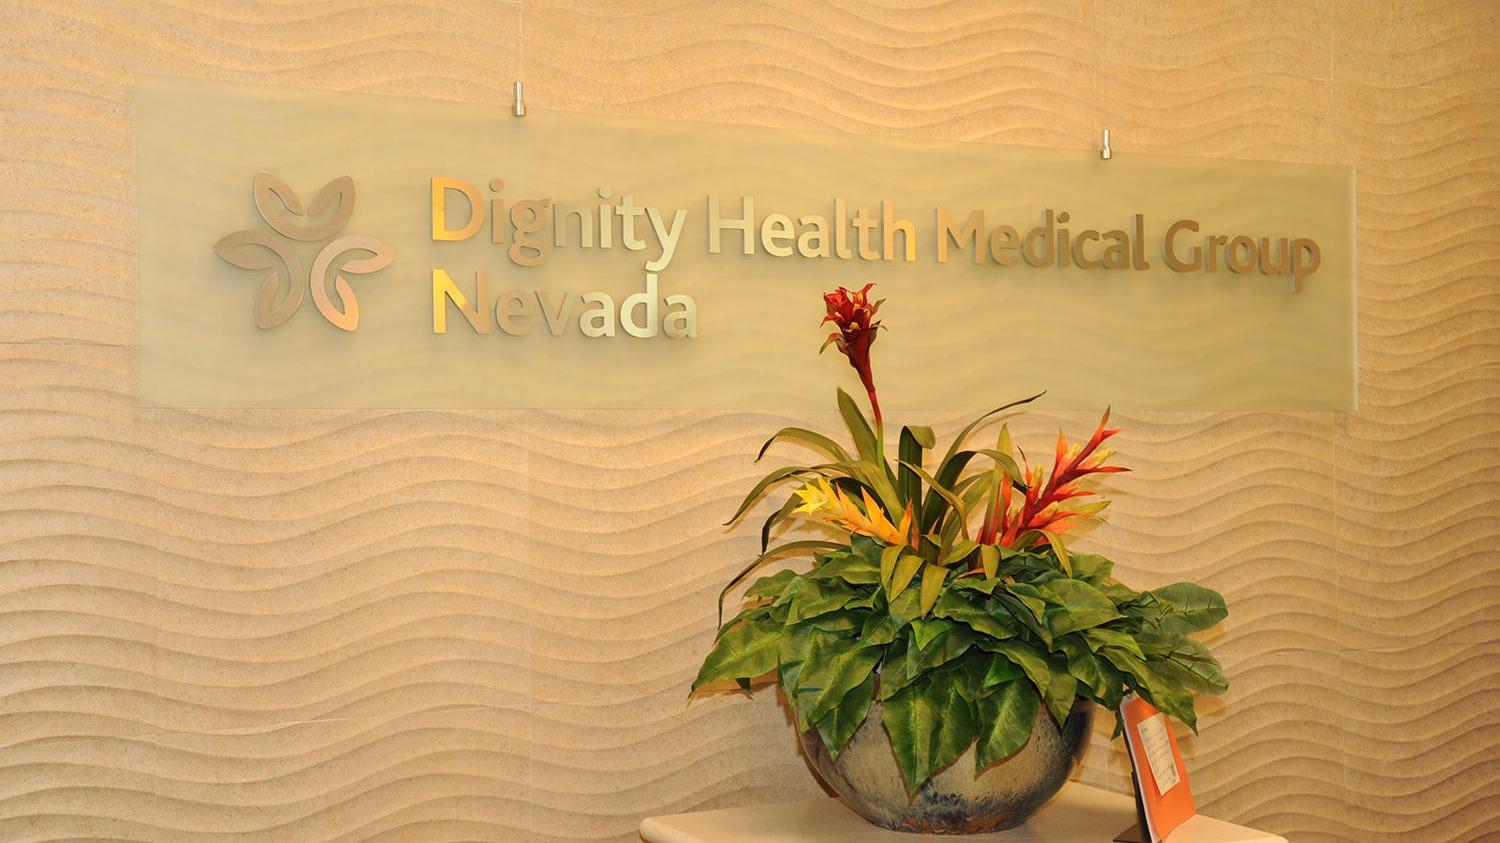 Dignity Health Medical Group - Henderson, NV